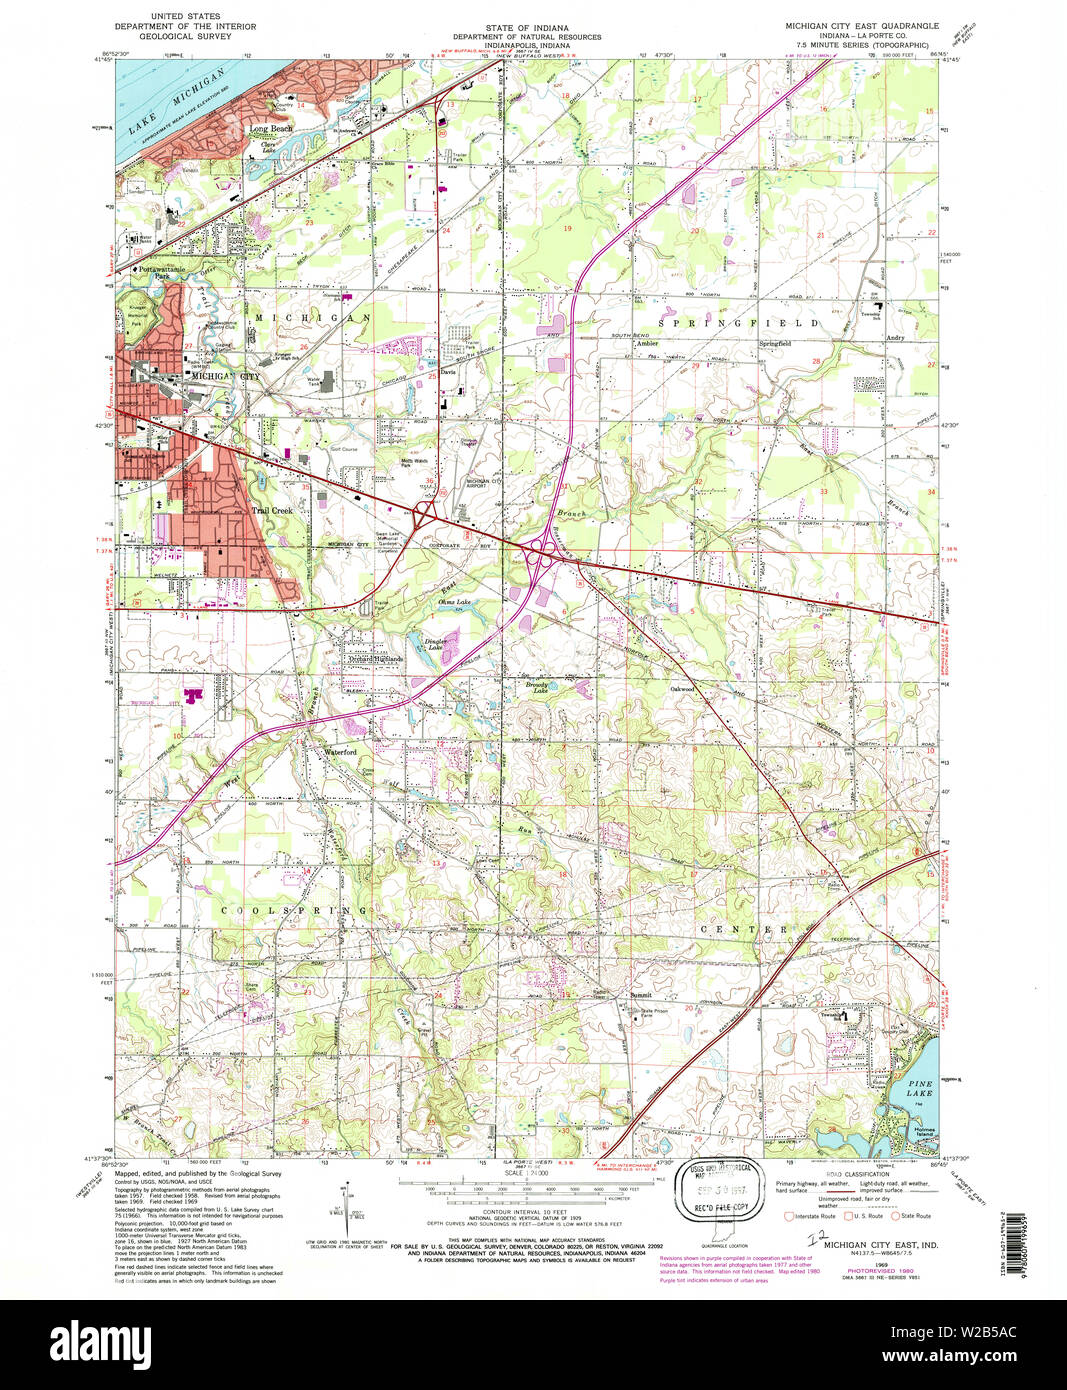 Usgs Topo Map Indiana In Michigan City East 160674 1969